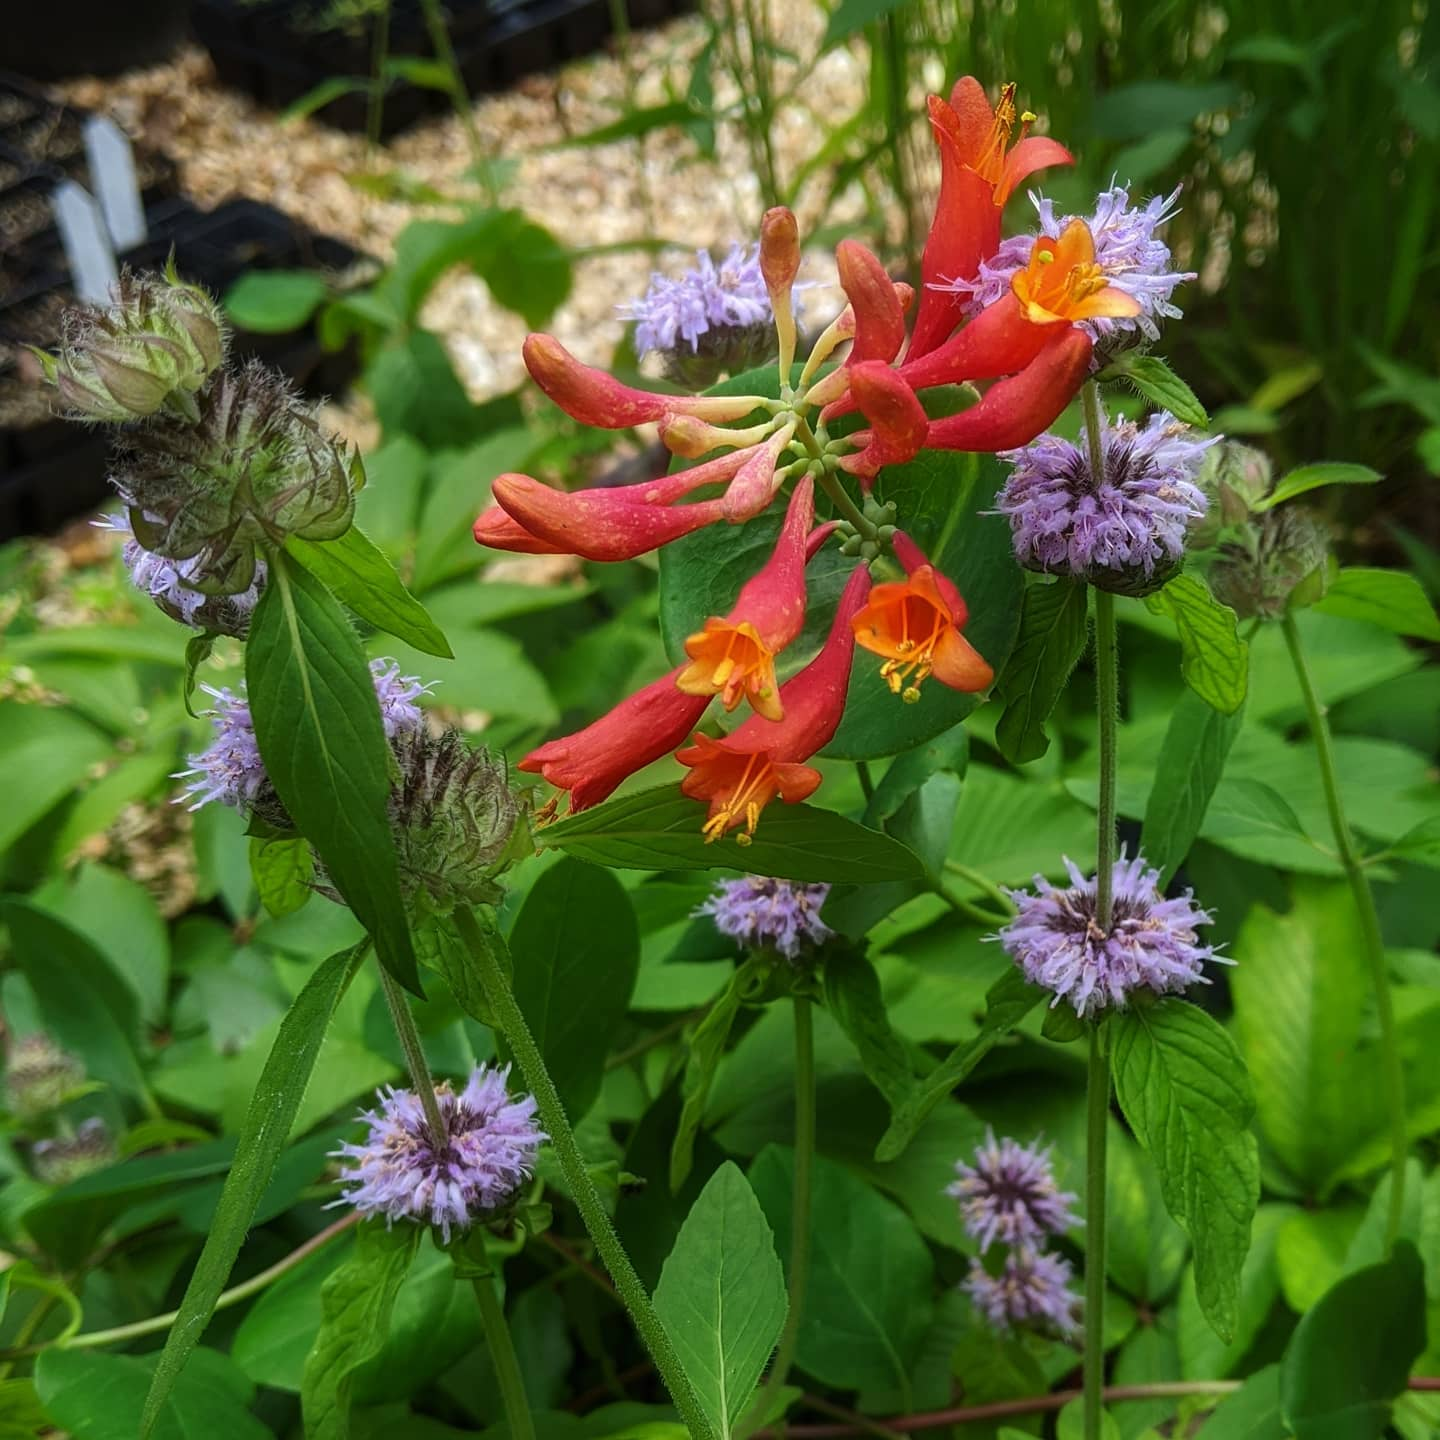 ohio horsemint and coral honeysuckle by David Middleton